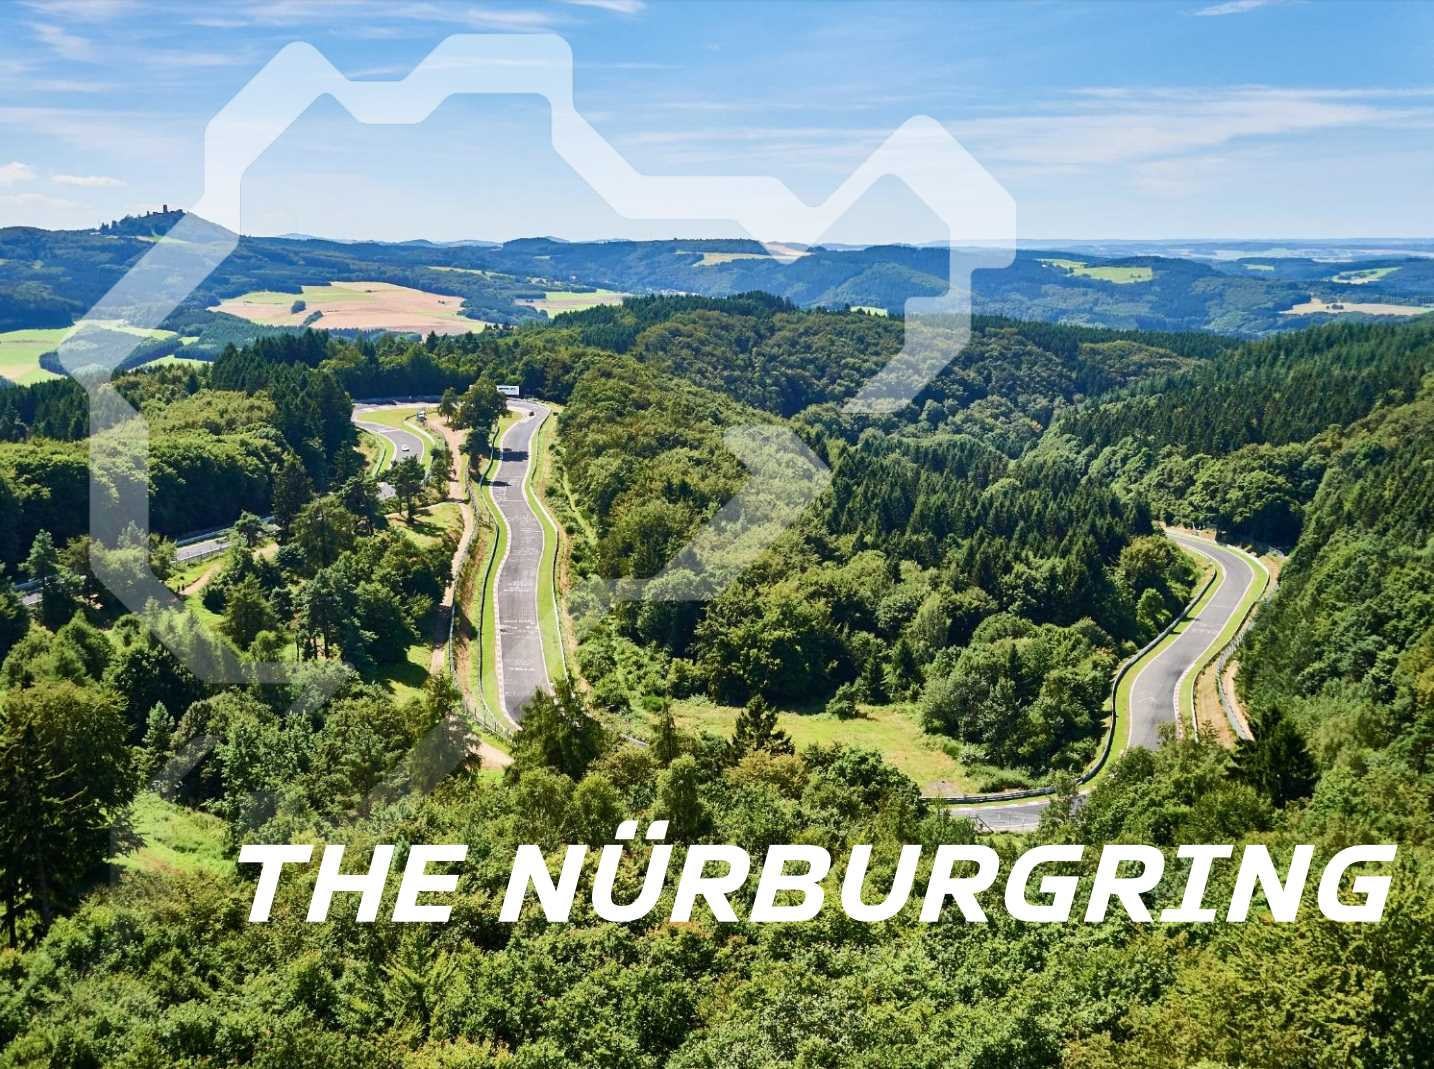 Nurburgring Press Image